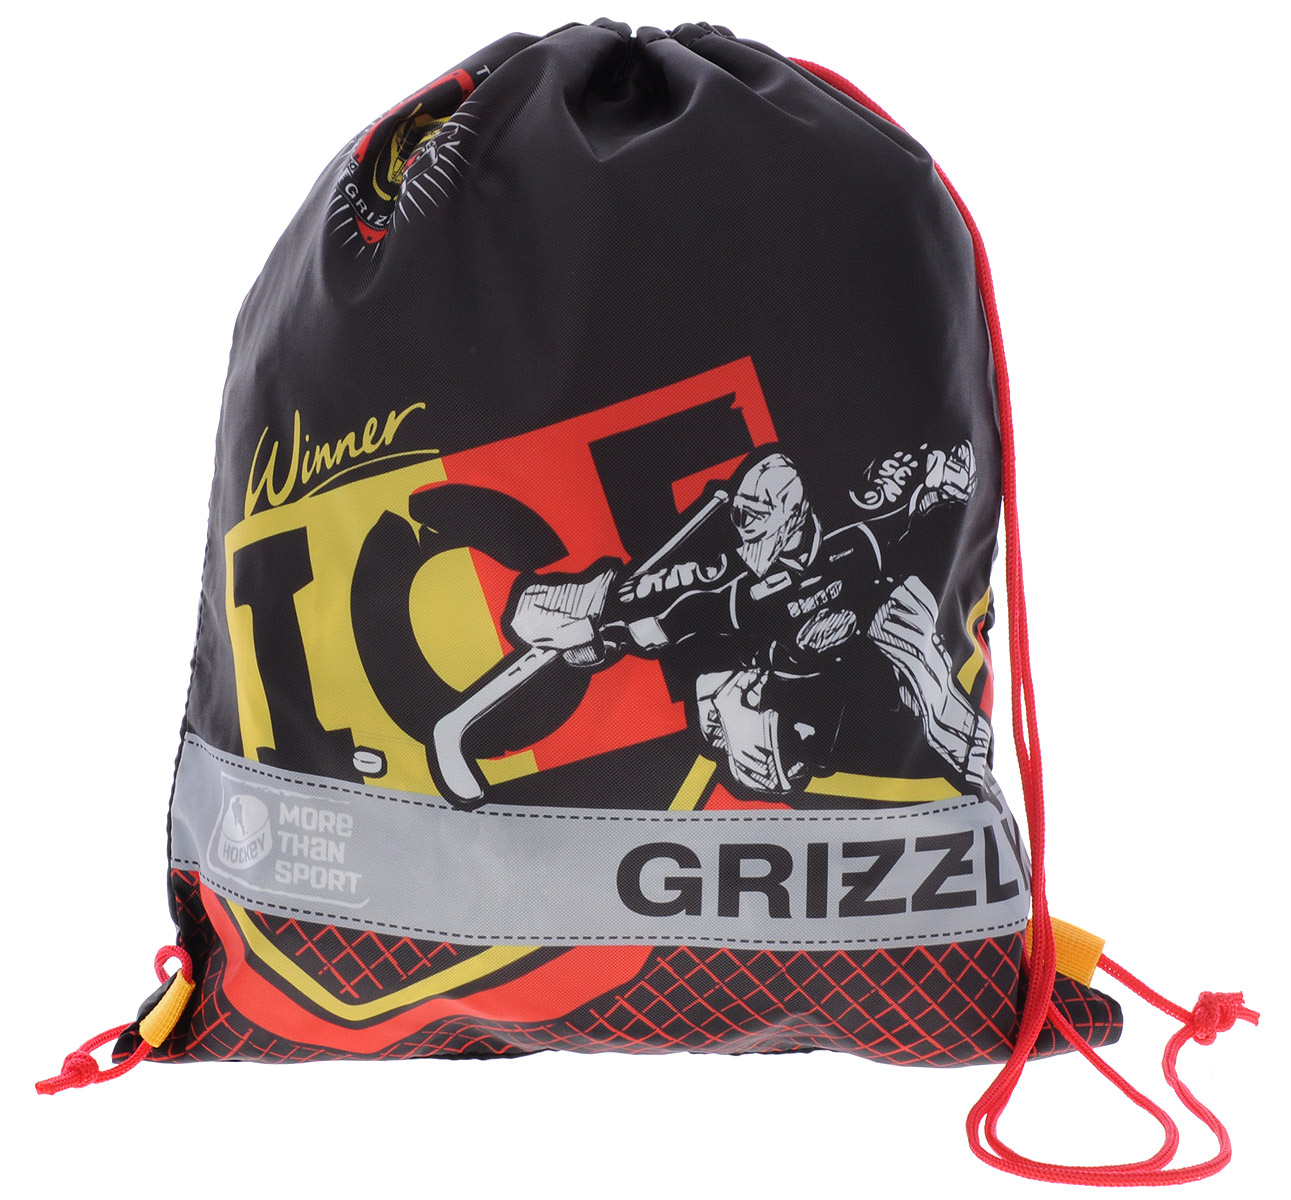 Grizzly Мешок для обуви More Than Sport grizzly мешок для сменной обуви om 770 5 1